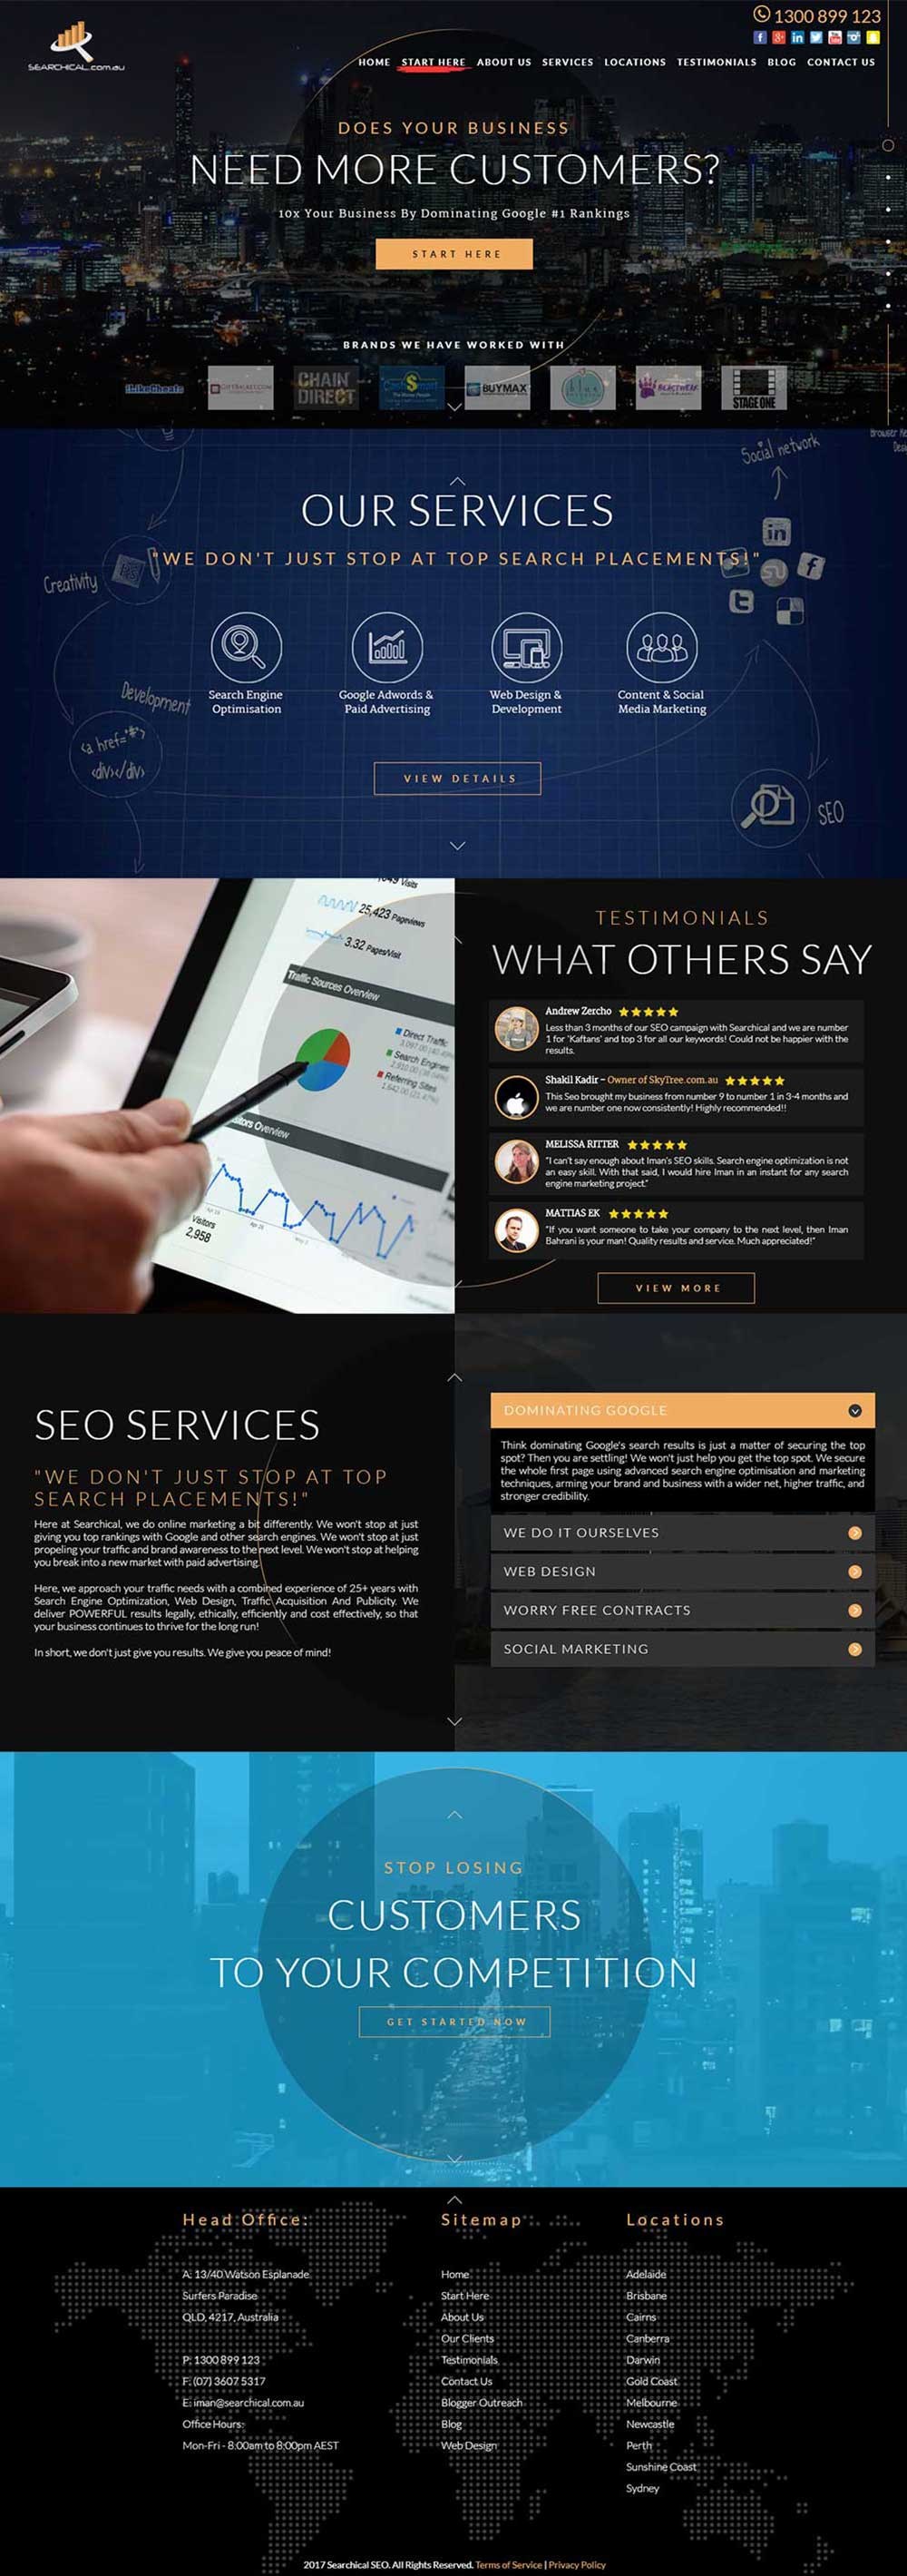 Searchical SEO